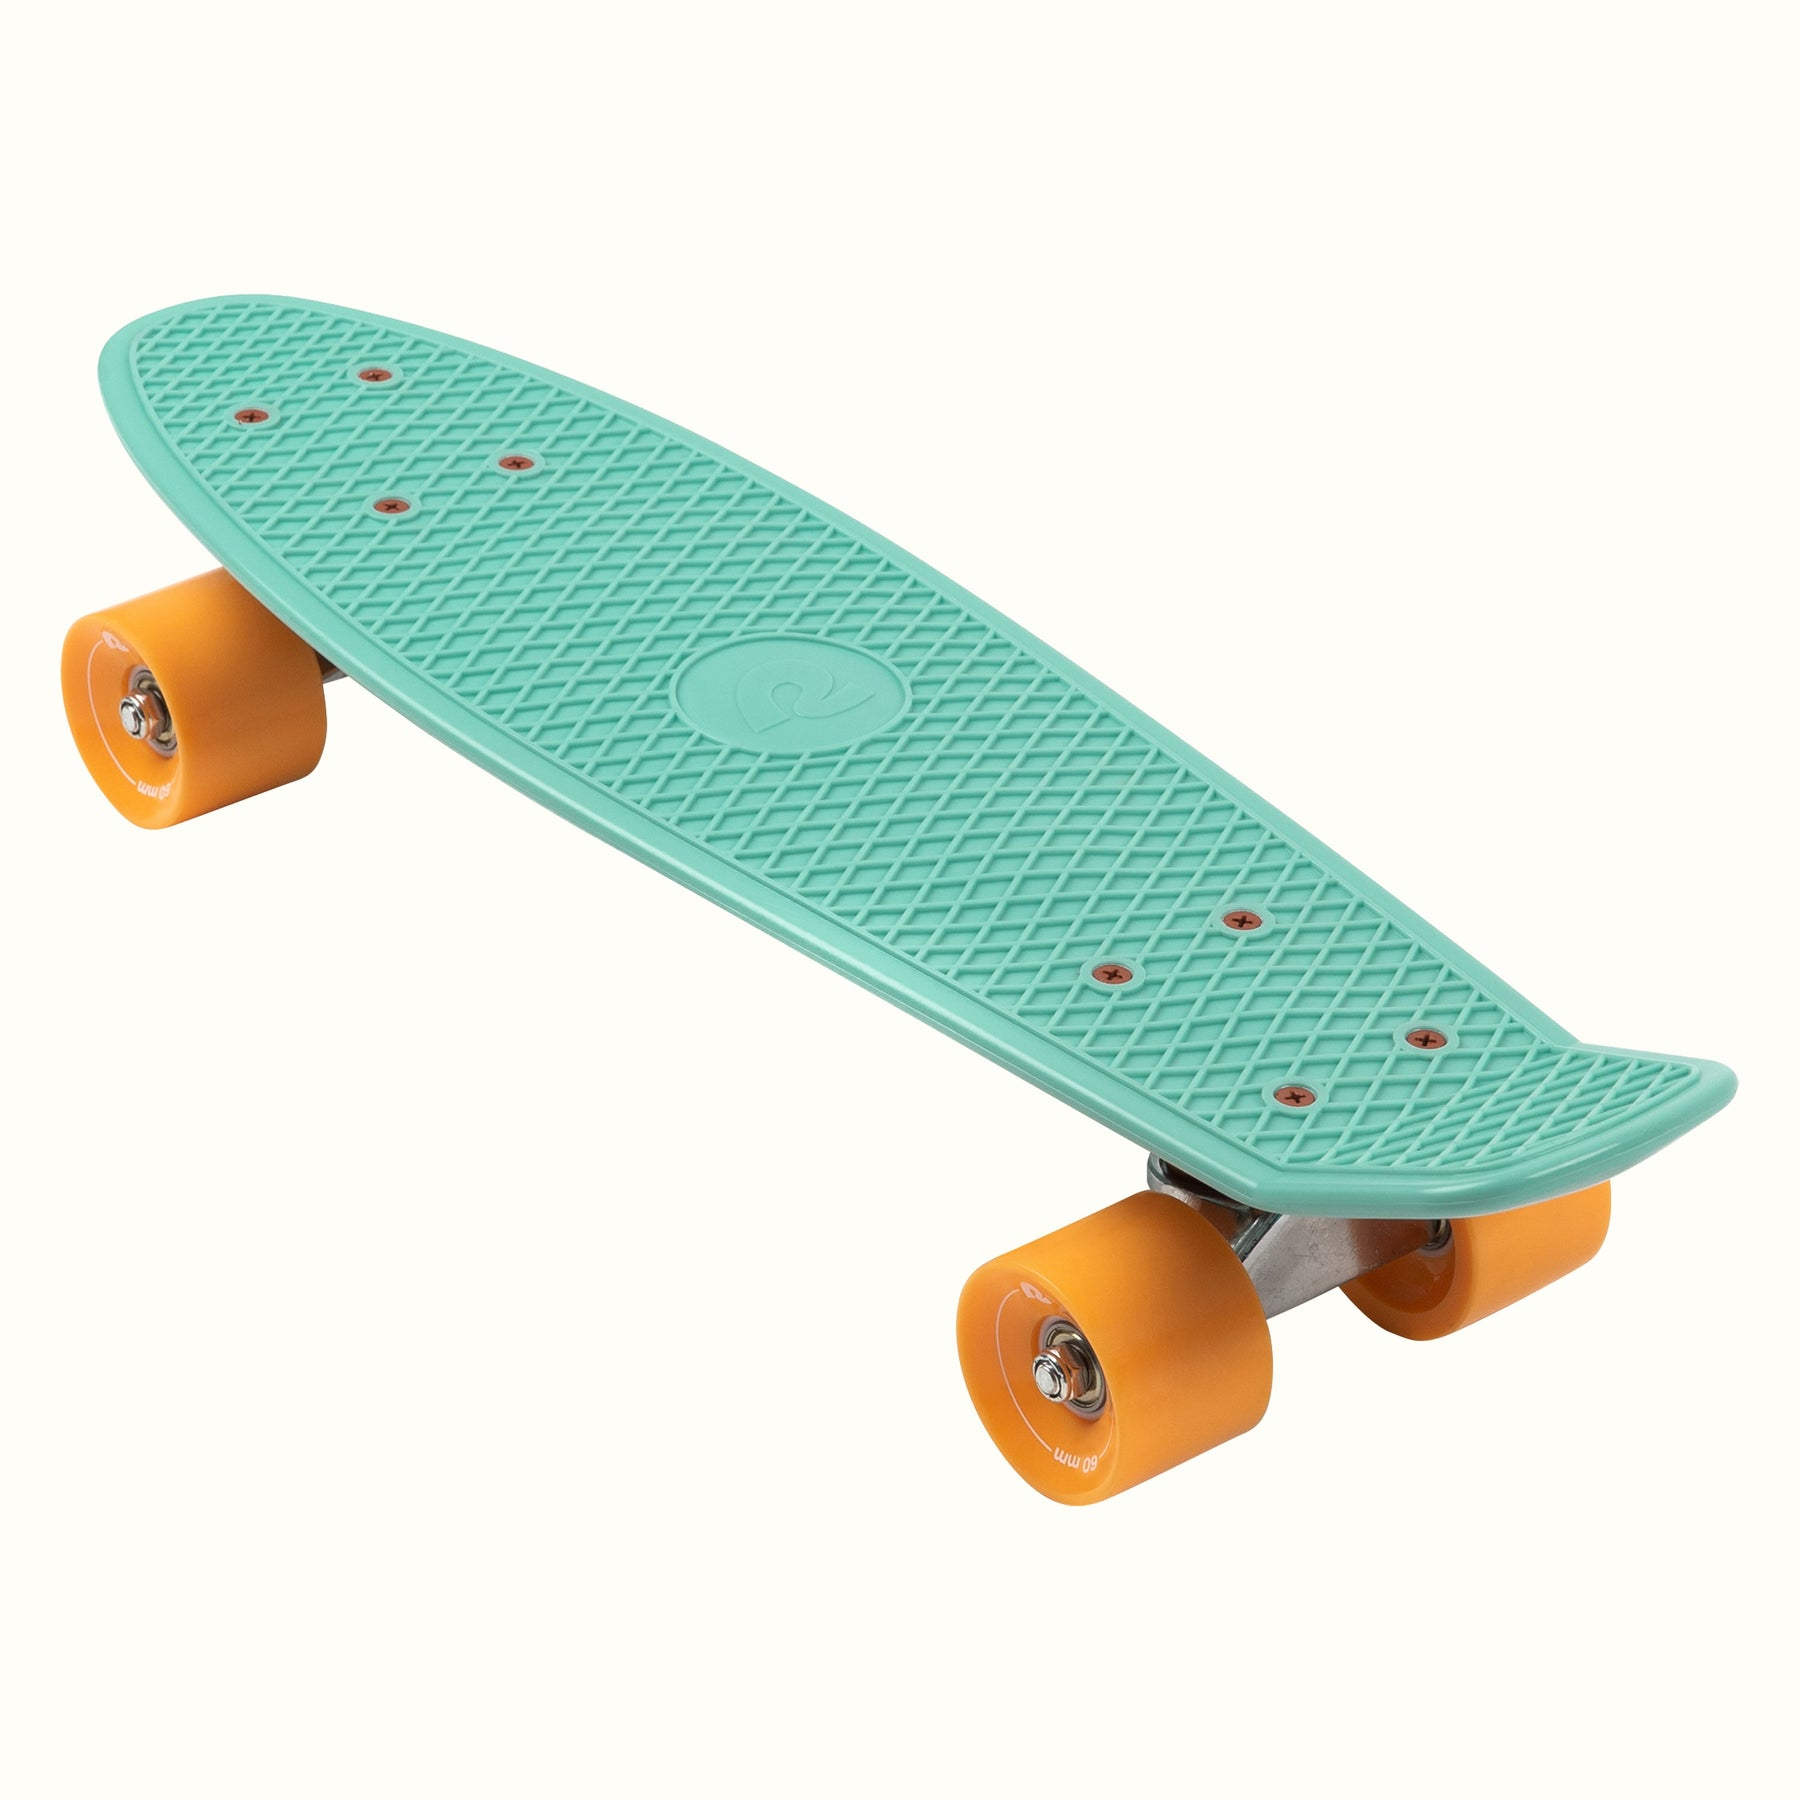 21.5/'/' Mini Cruiser Skateboards for Beginners with 6 in 1 Details about  /Skateboards for Kids